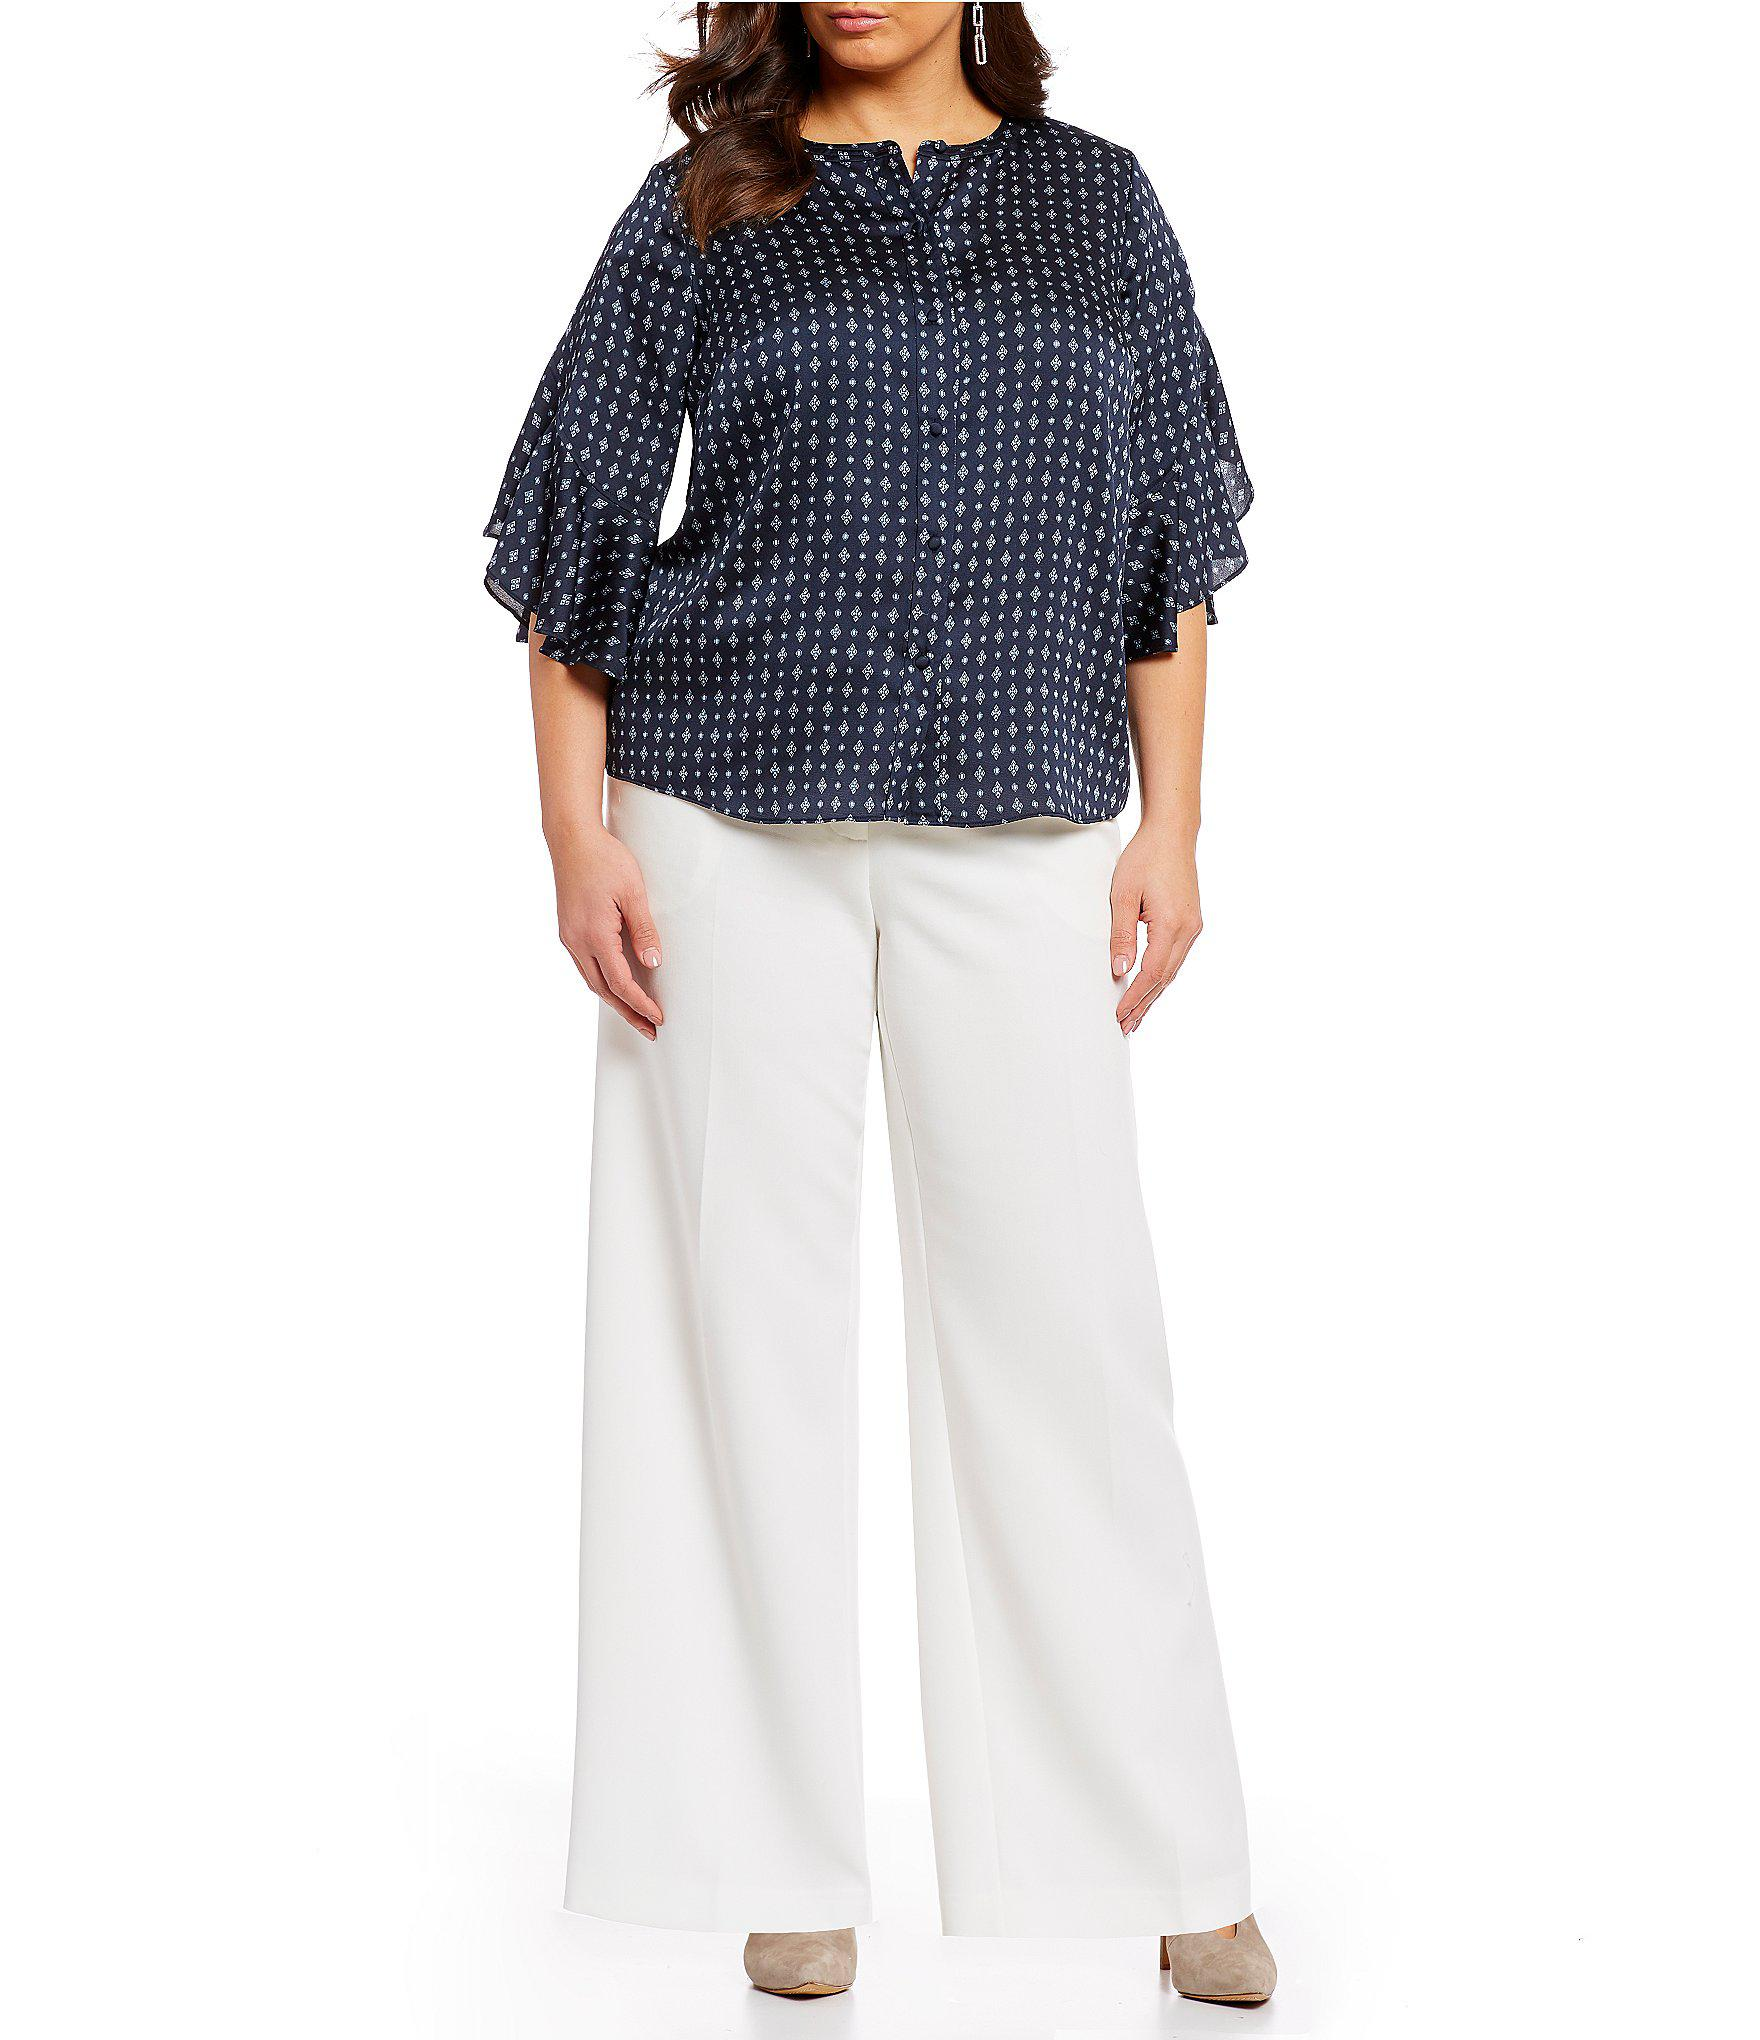 3065b6bf203 Vince Camuto - Blue Plus Size Geo Print Flutter Sleeve Button Front Blouse  - Lyst. View fullscreen